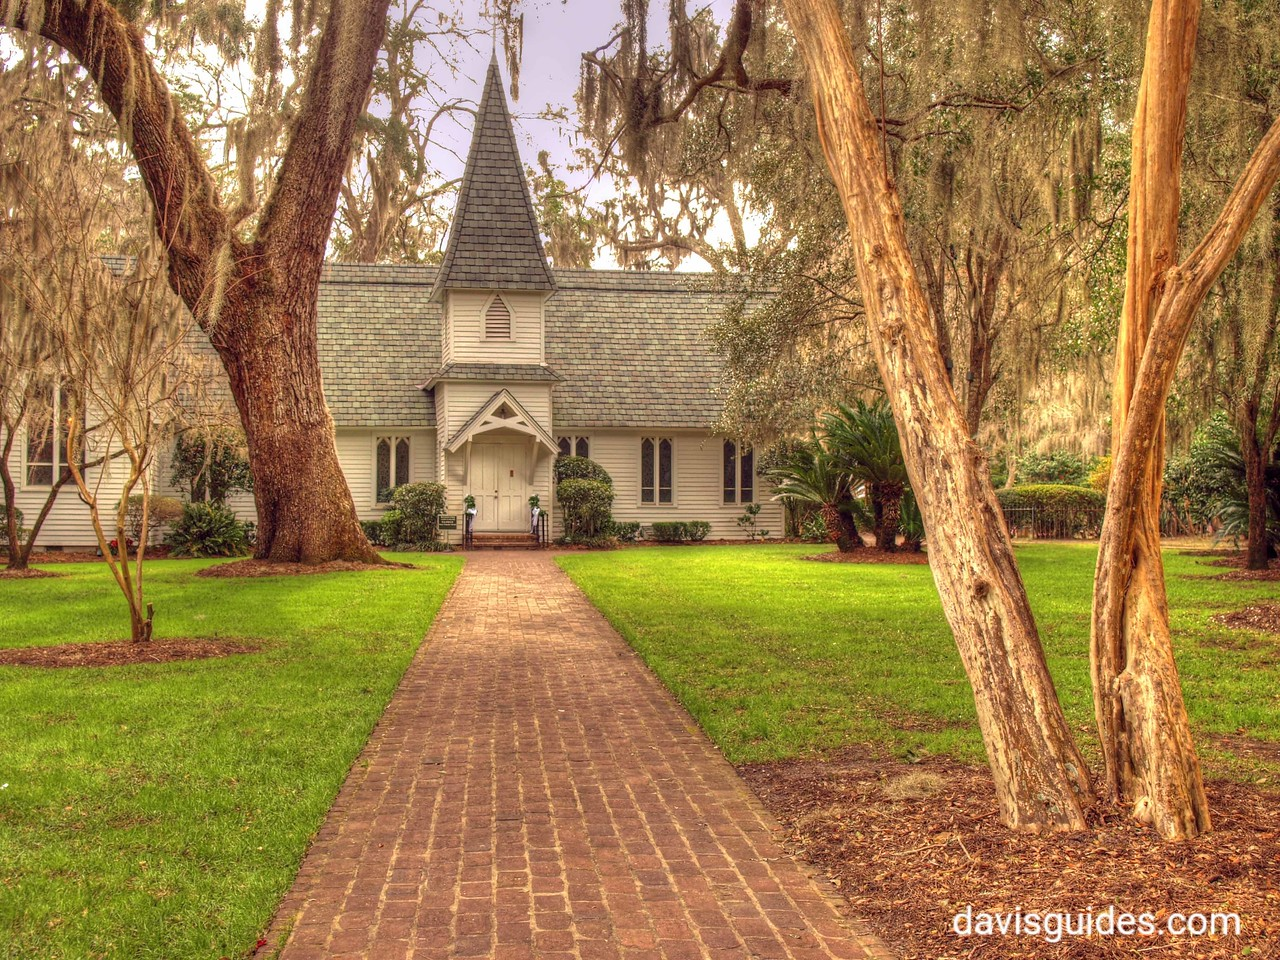 Christ Church Frederica, St. Simons Island